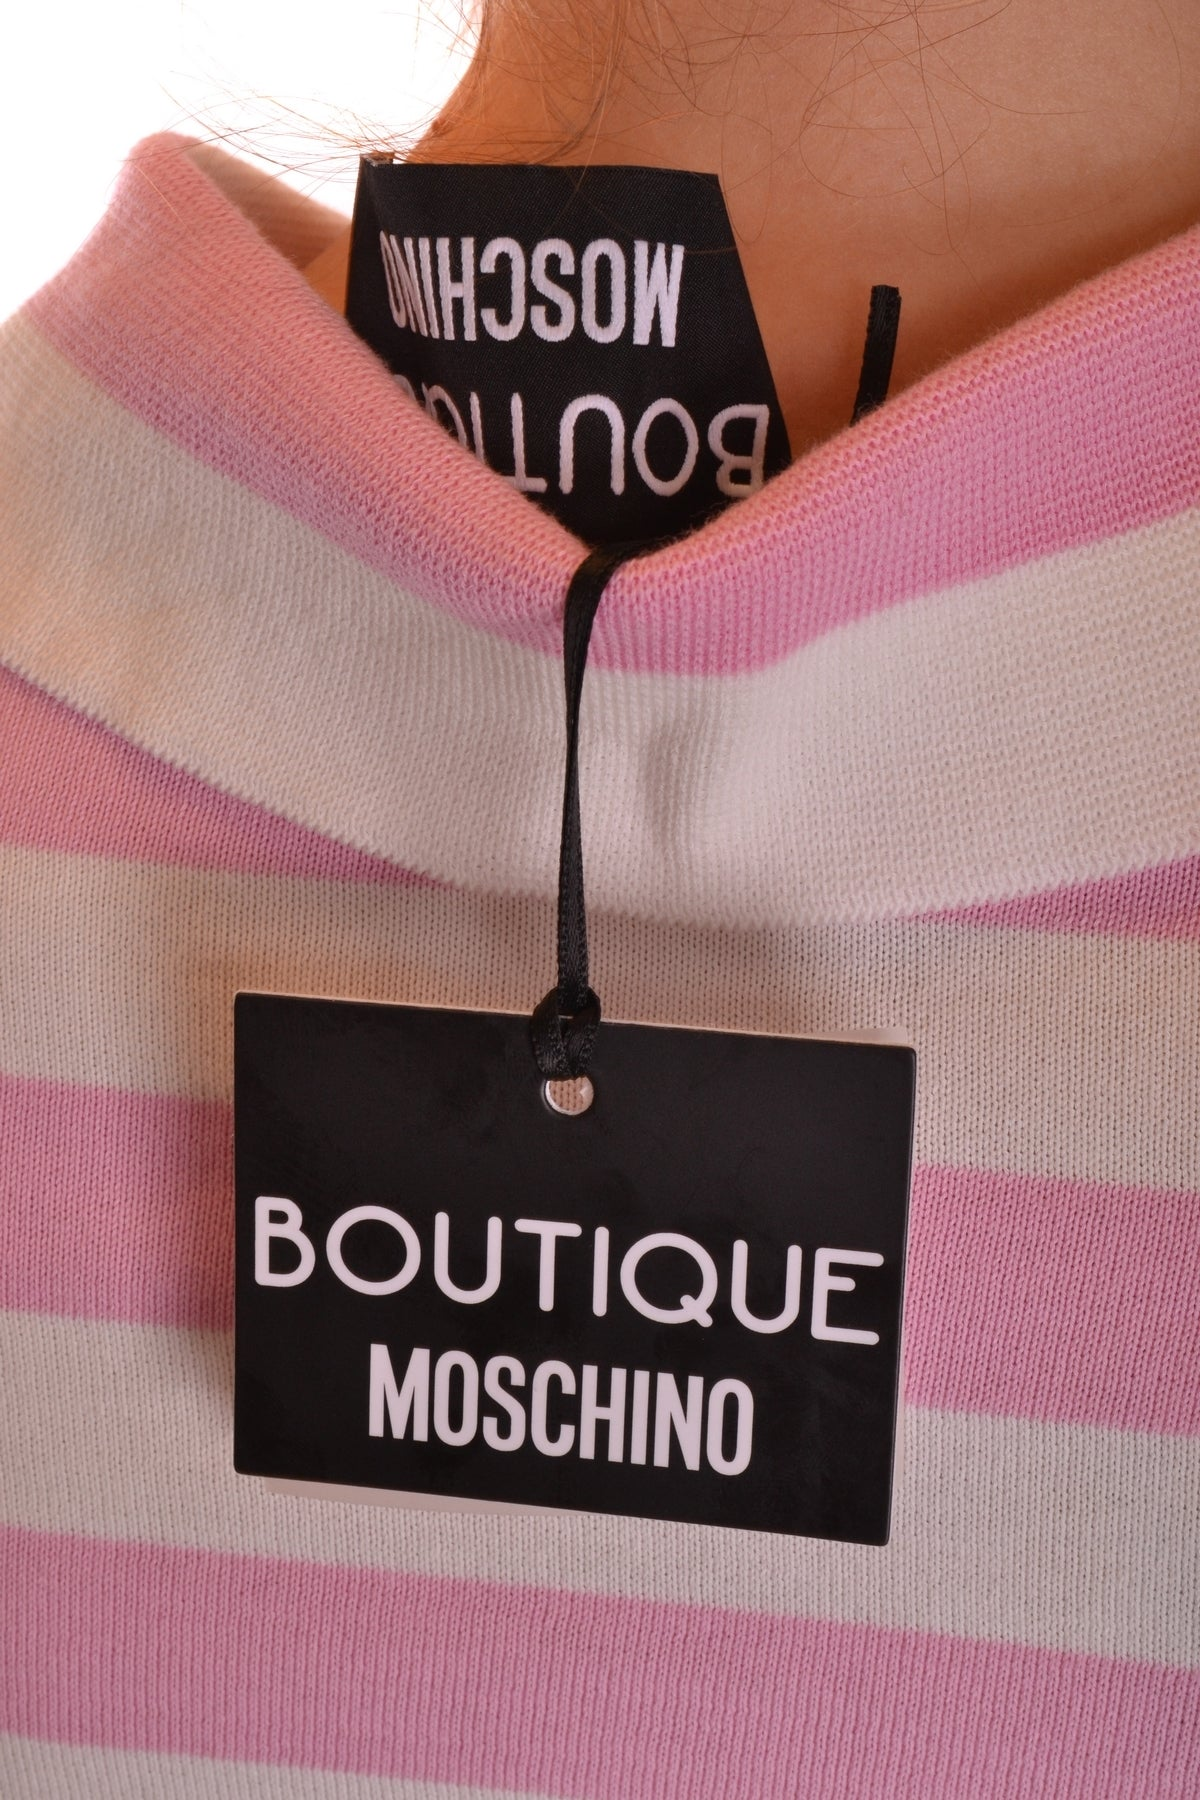 Polo Moschino-Polos - WOMAN-Product Details Season: Spring / SummerTerms: New With LabelMain Color: MulticolorGender: WomanMade In: ItalyManufacturer Part Number: H A0907Size: ItYear: 2018Clothing Type: PoleComposition: Cotton 100%-Keyomi-Sook